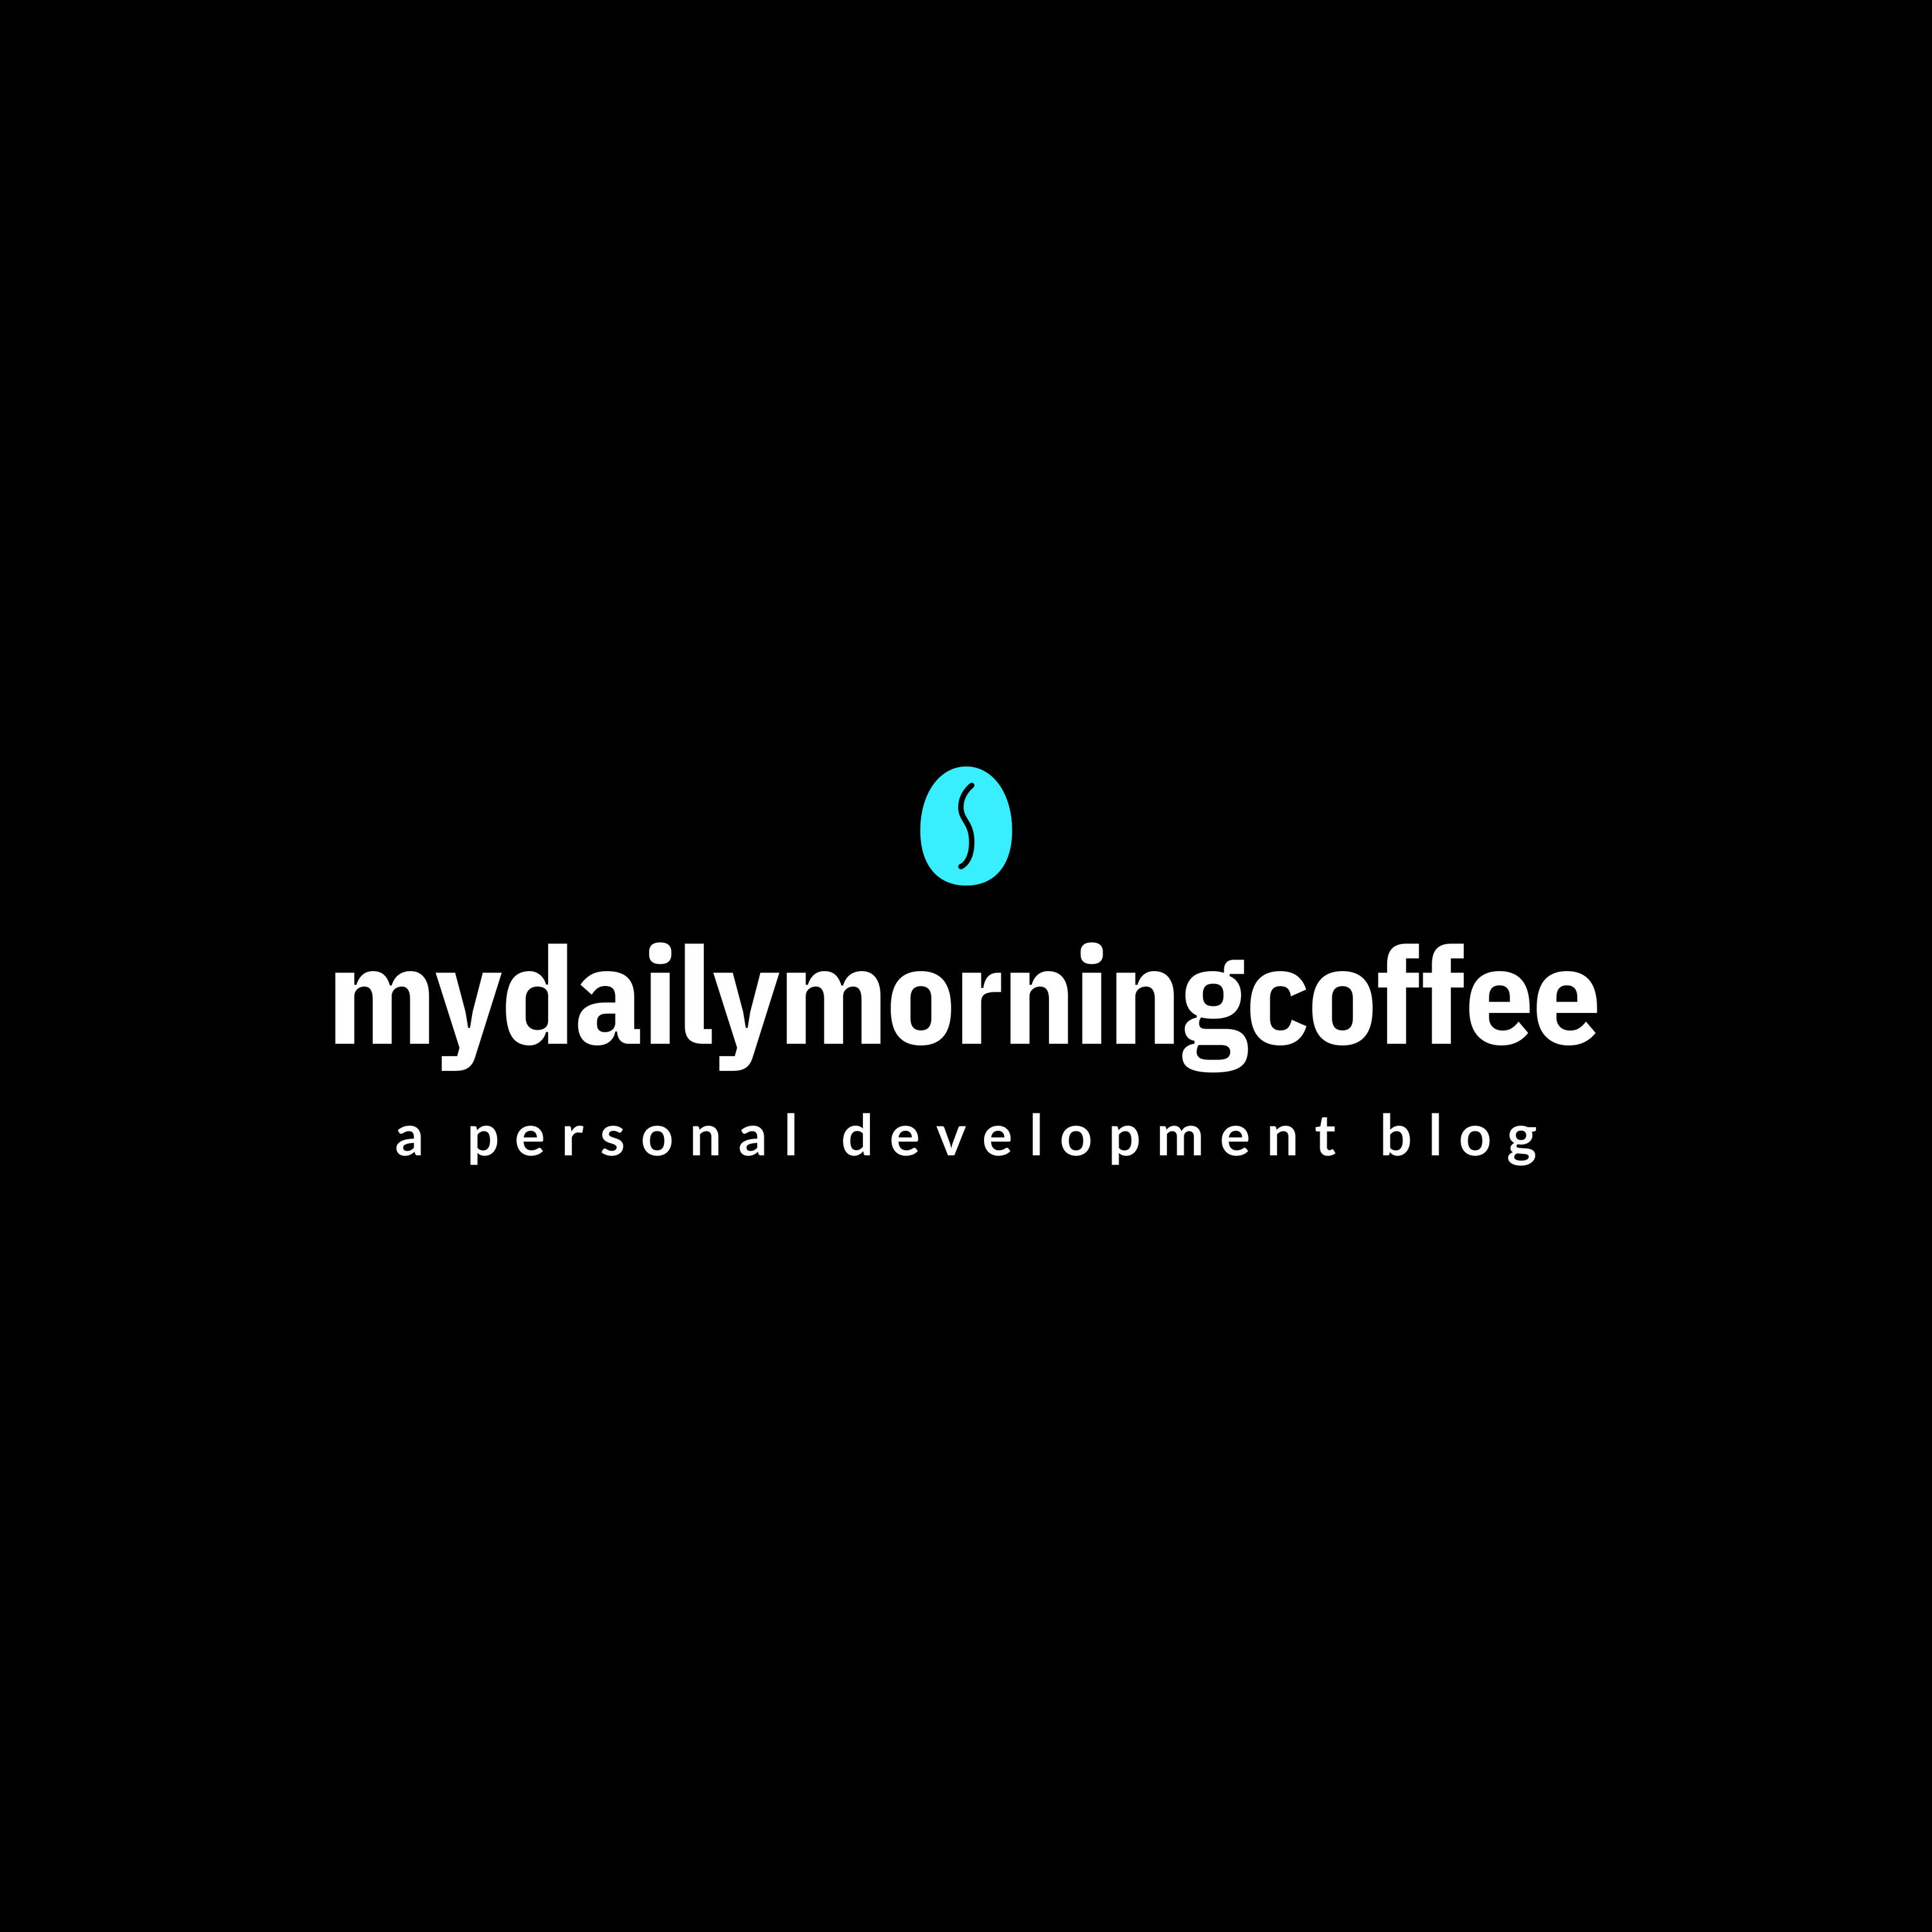 mydailymorningcoffee